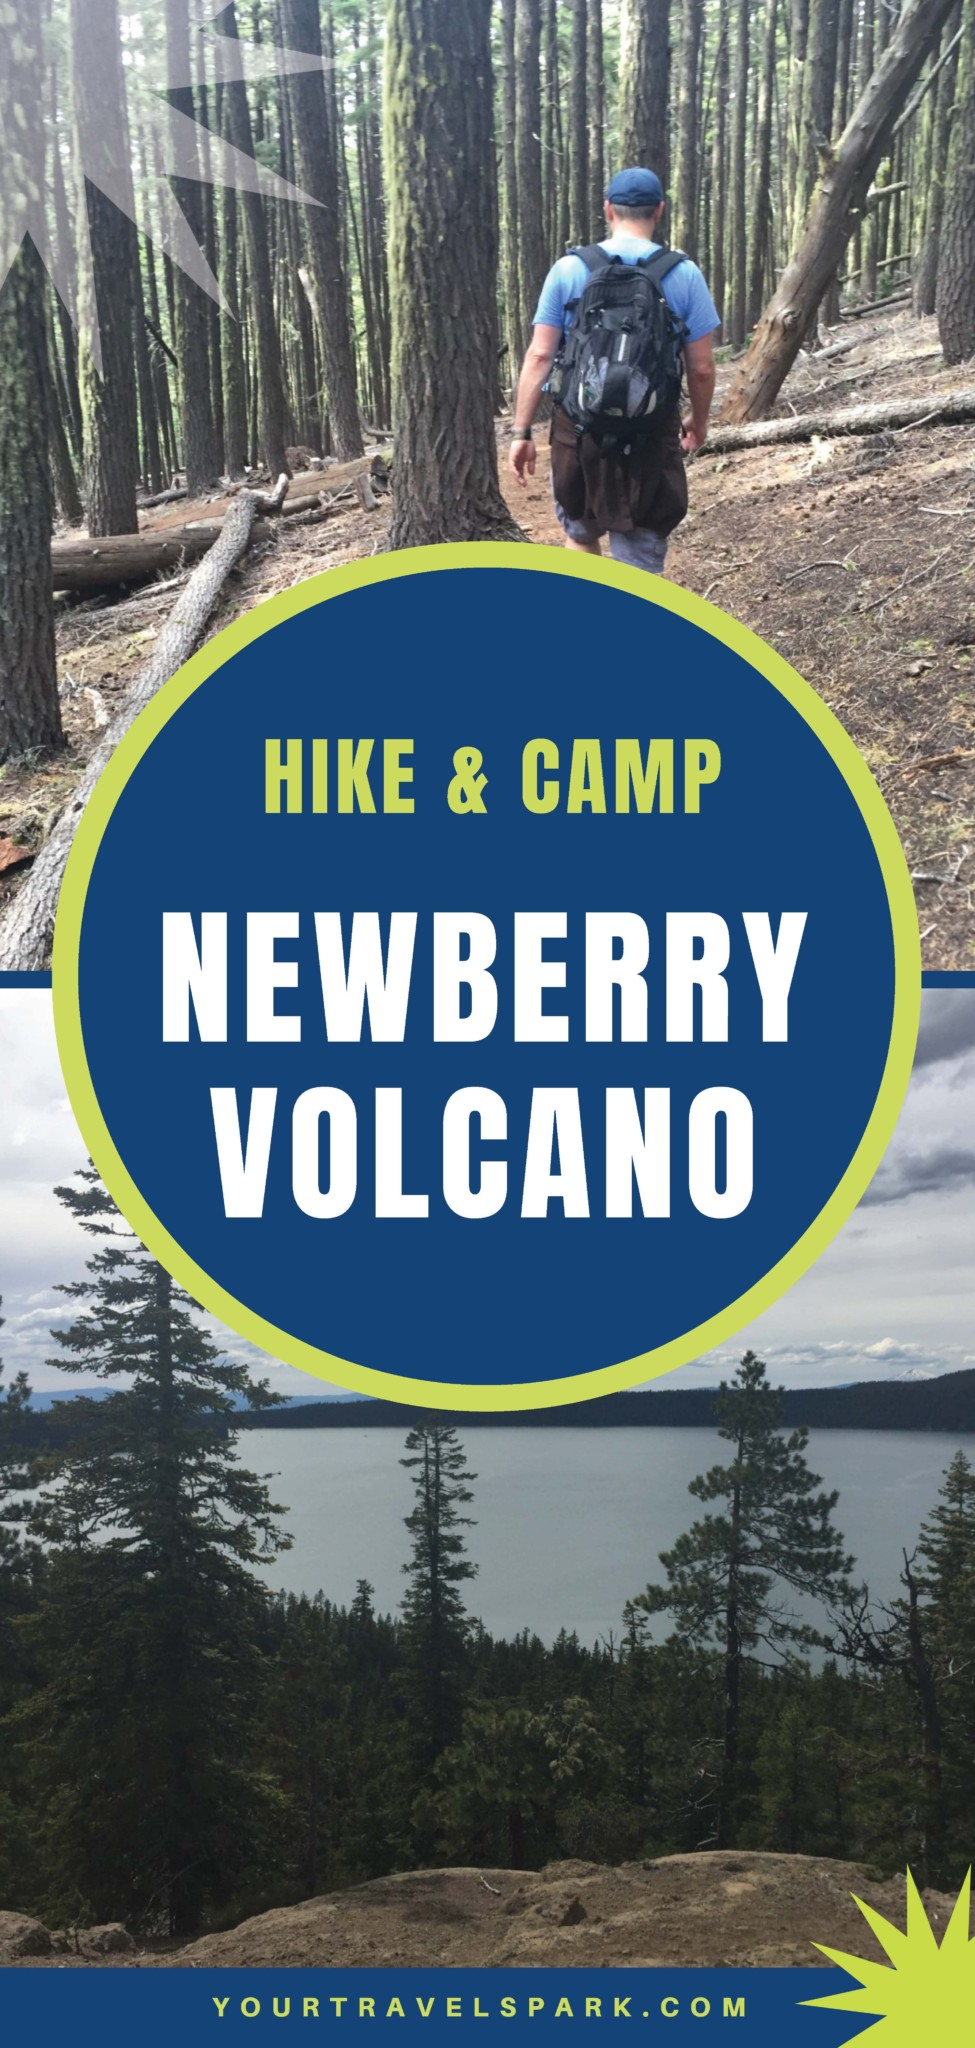 You can hike the caldera of the Newberry Volcano or camp at Paulina Lake in Central Oregon, just outside of Bend, Oregon.